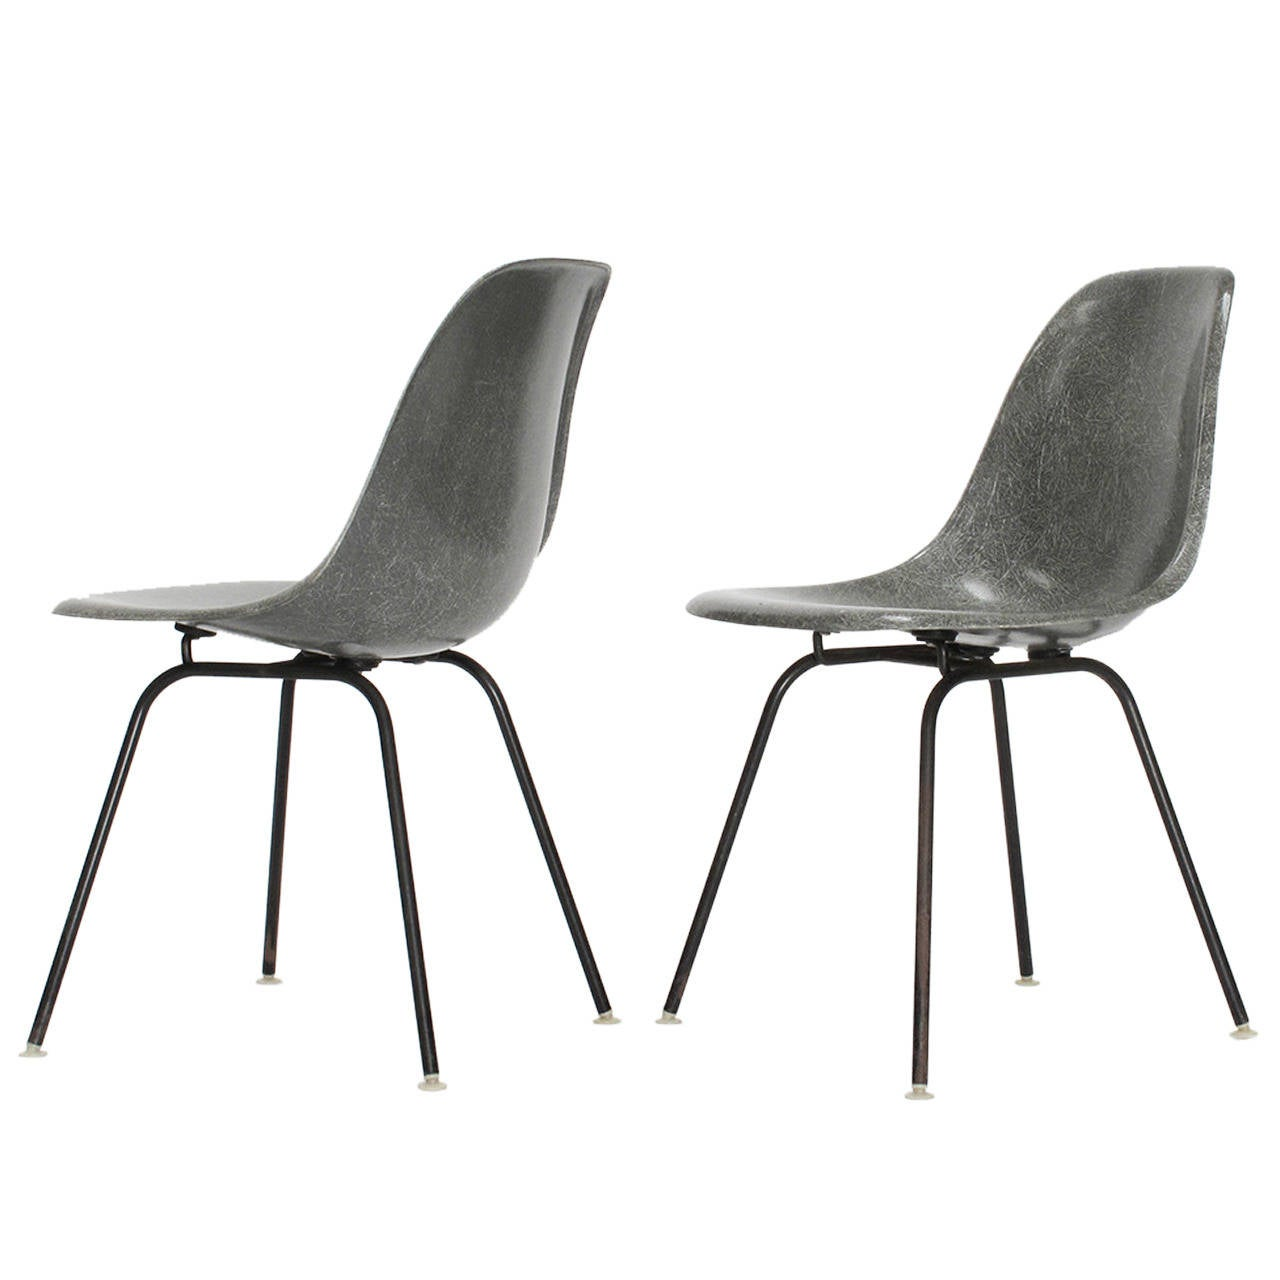 Pair Of Charles And Ray Eames Fiberglass Shell Chairs